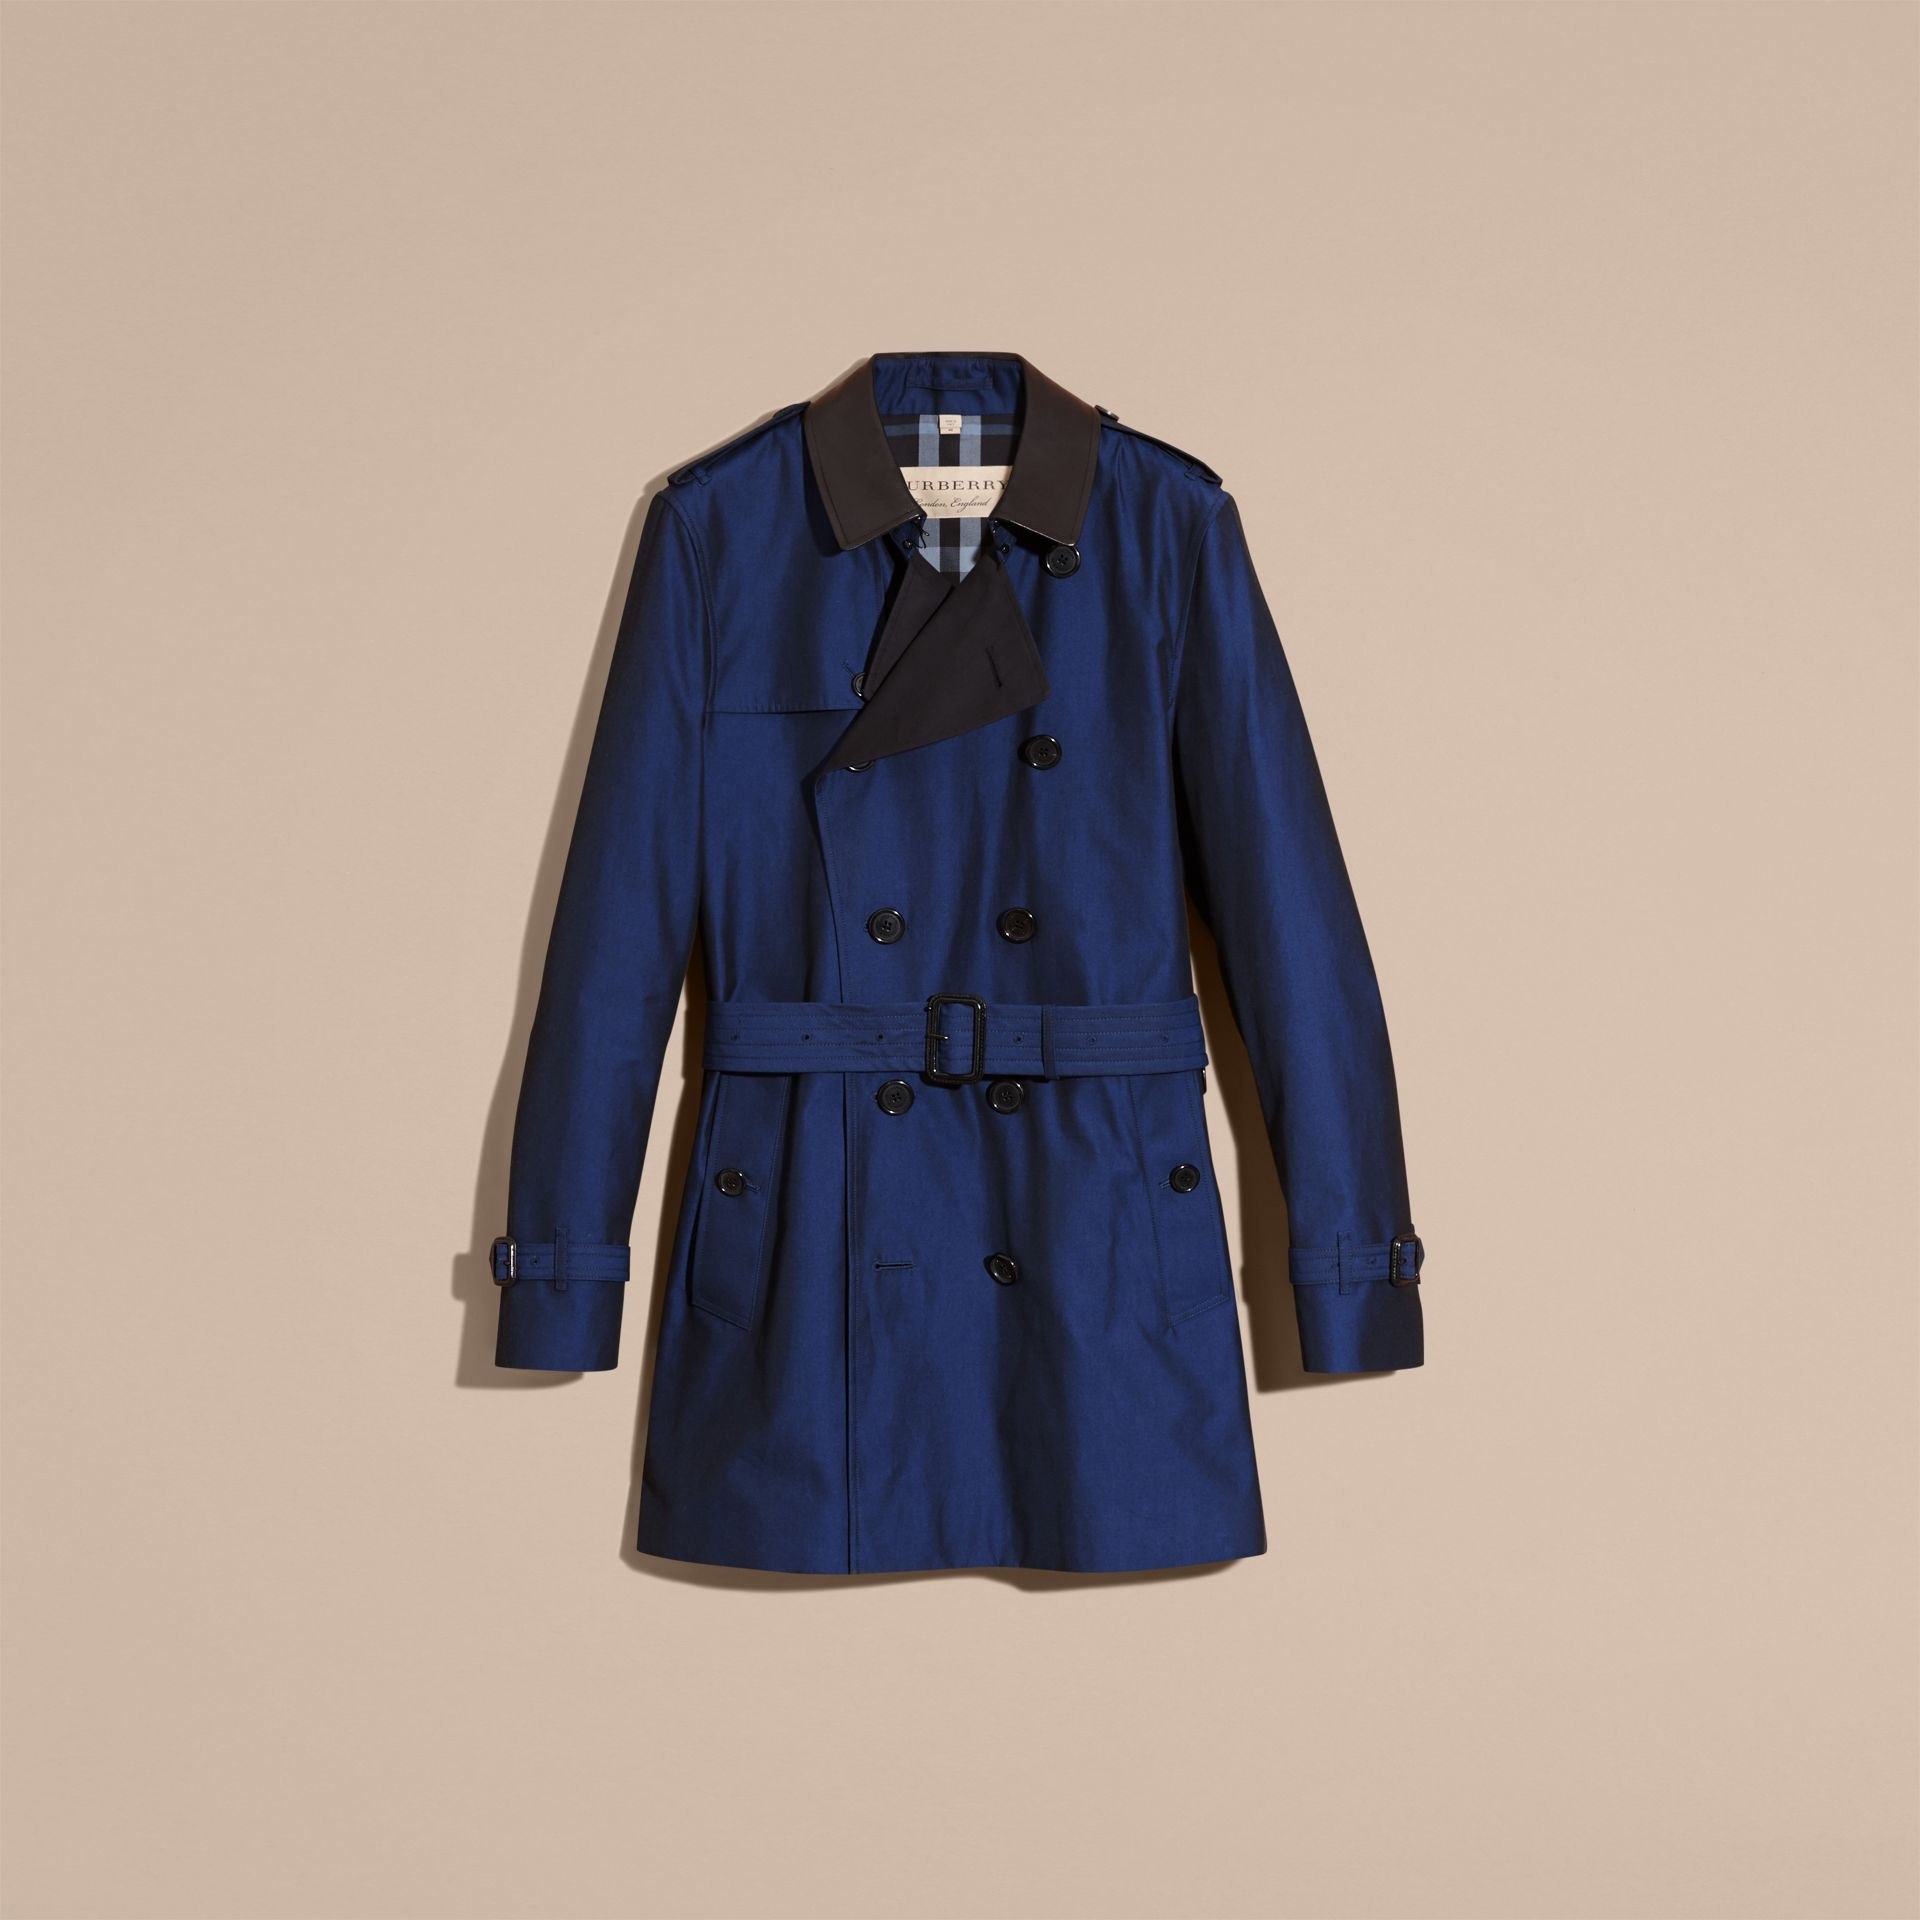 Bright regency blue Cotton Gabardine Trench Coat with Lambskin Topcollar - gallery image 4